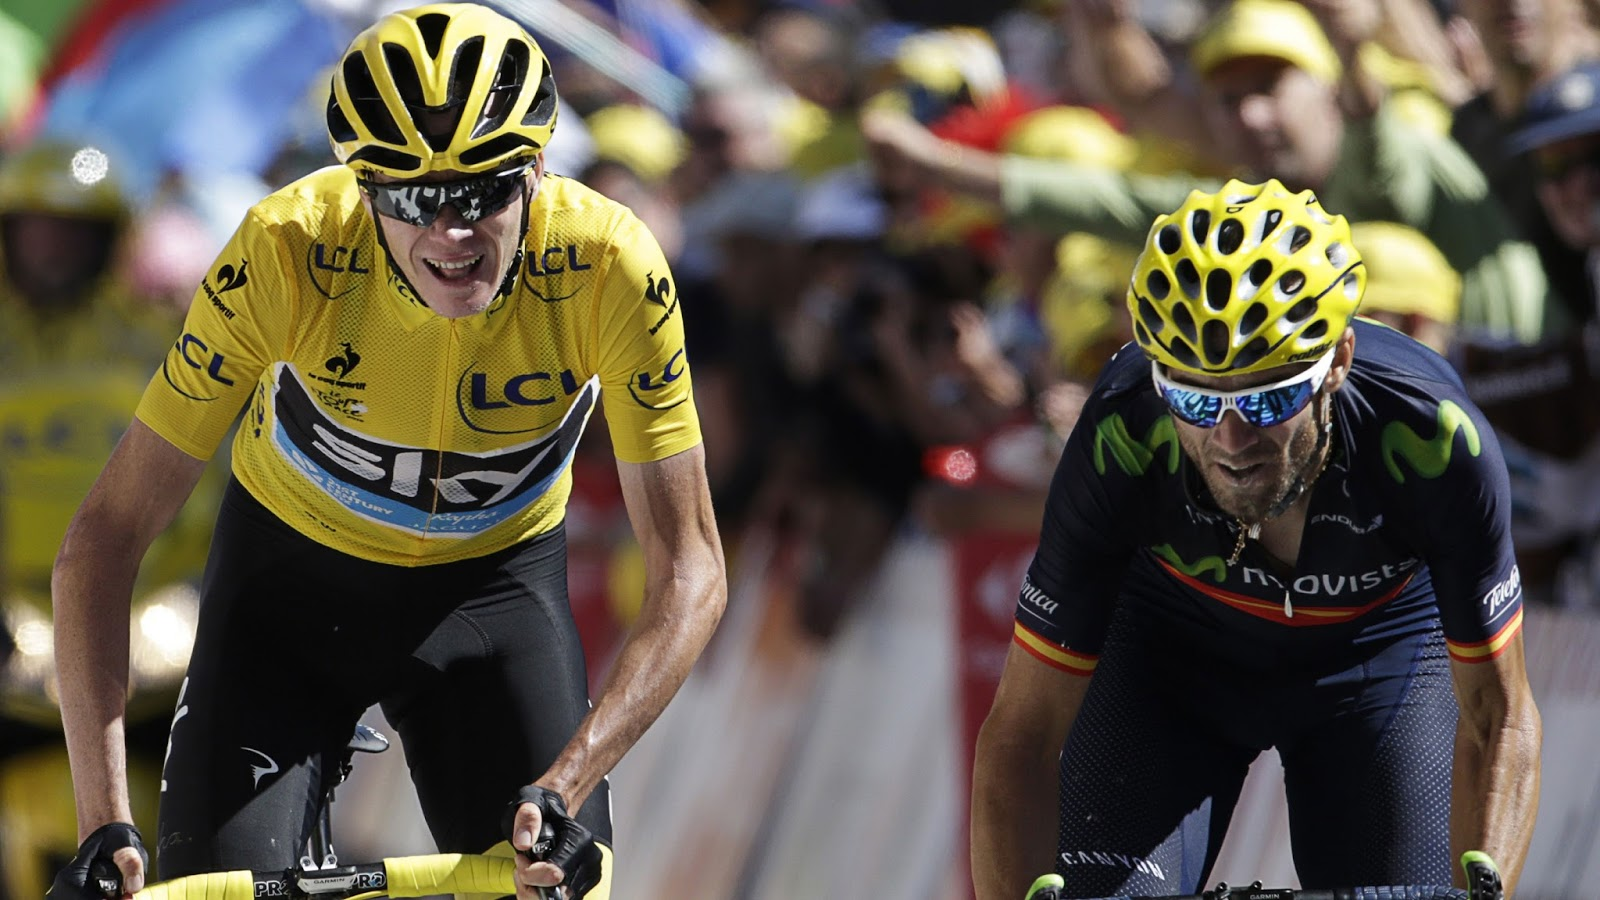 CHRIS FROOME 5